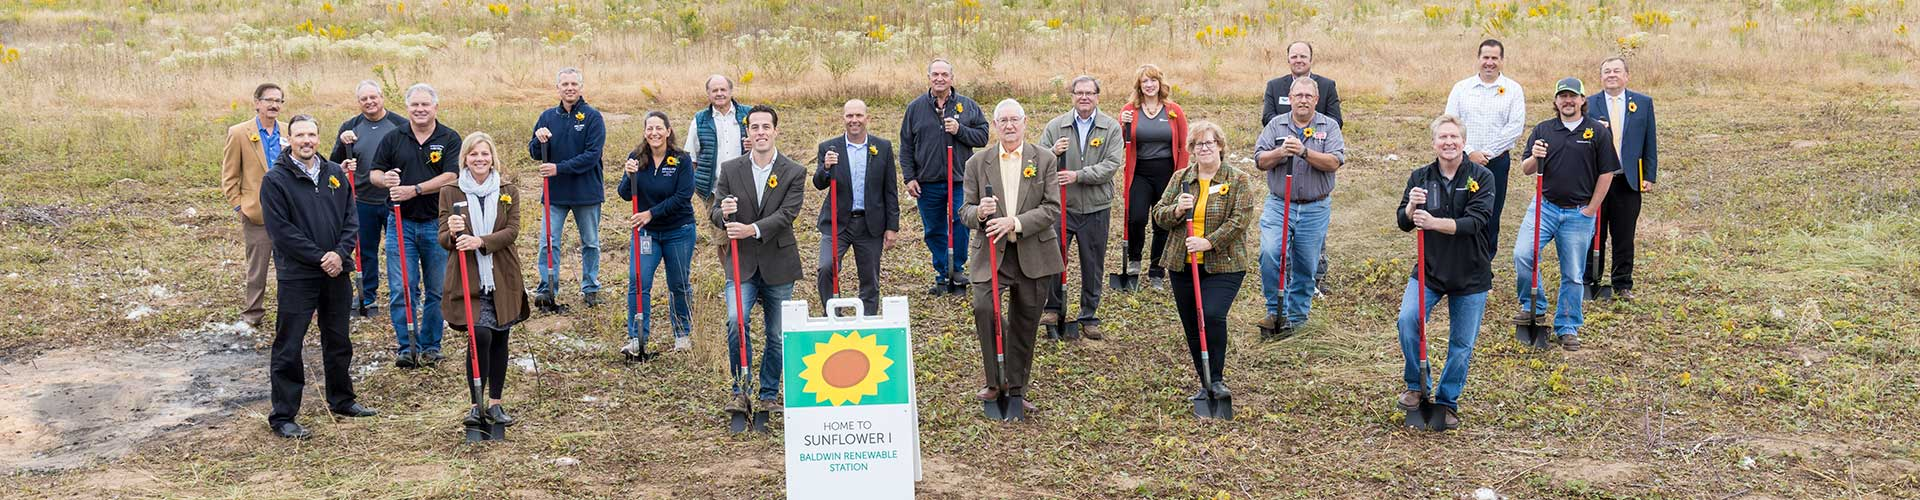 Connexus Energy holds groundbreaking for Sunflower I